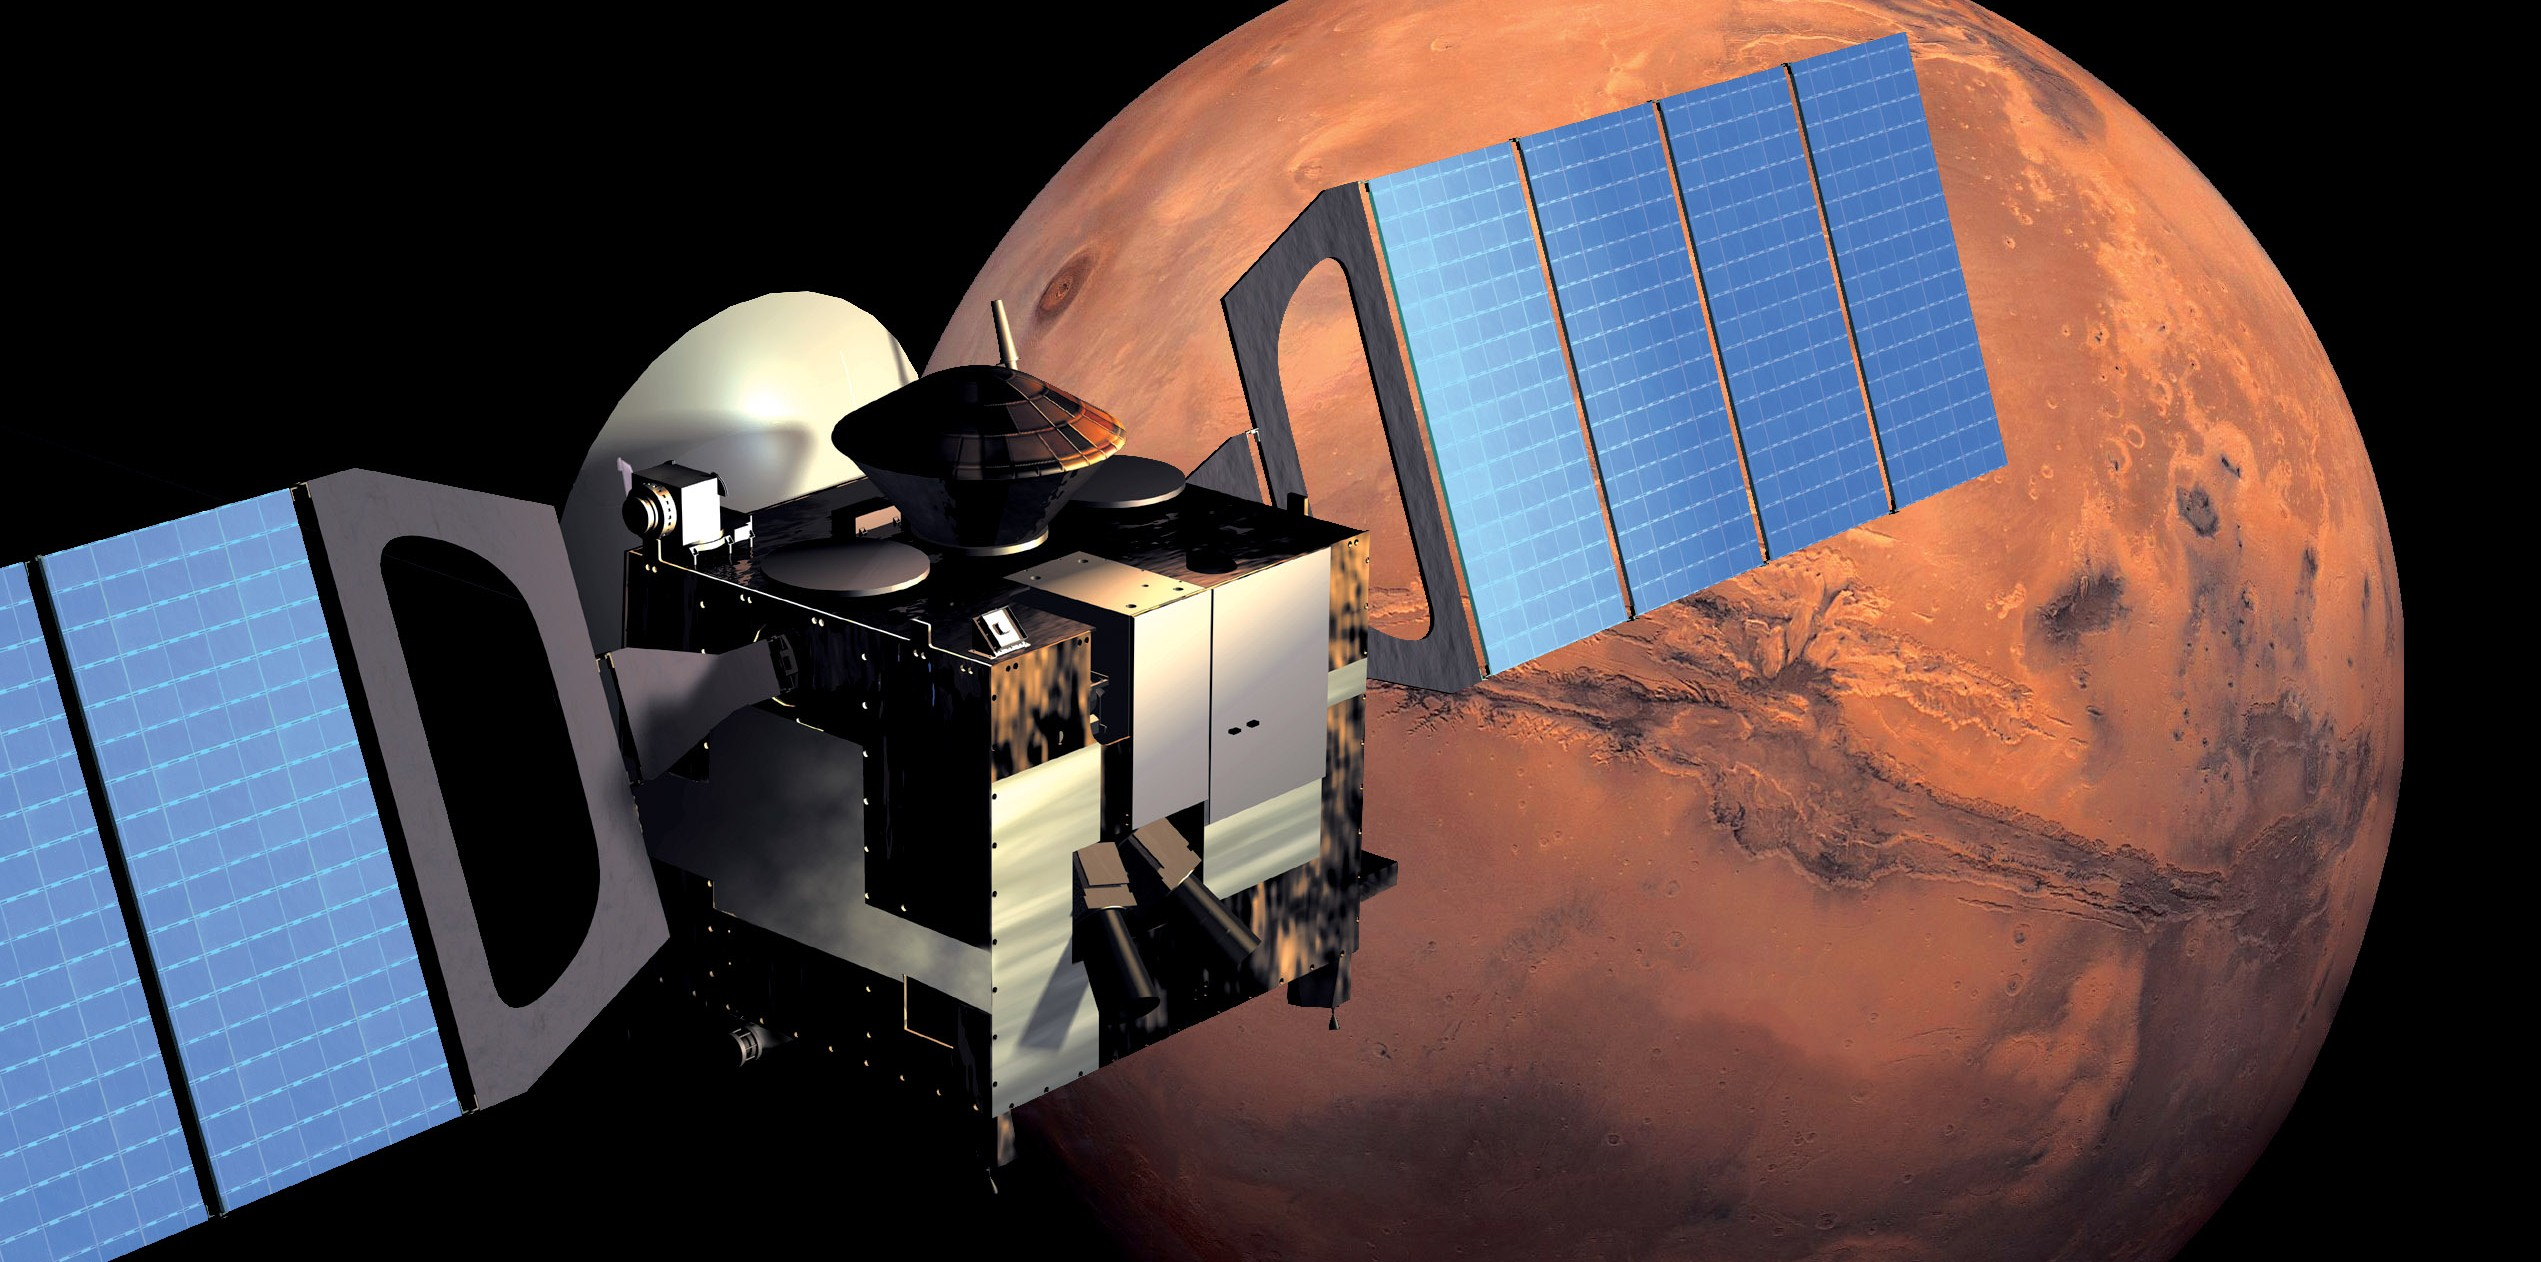 Mars Express in orbit around Mars. Credit: ESA/AOES Medialab